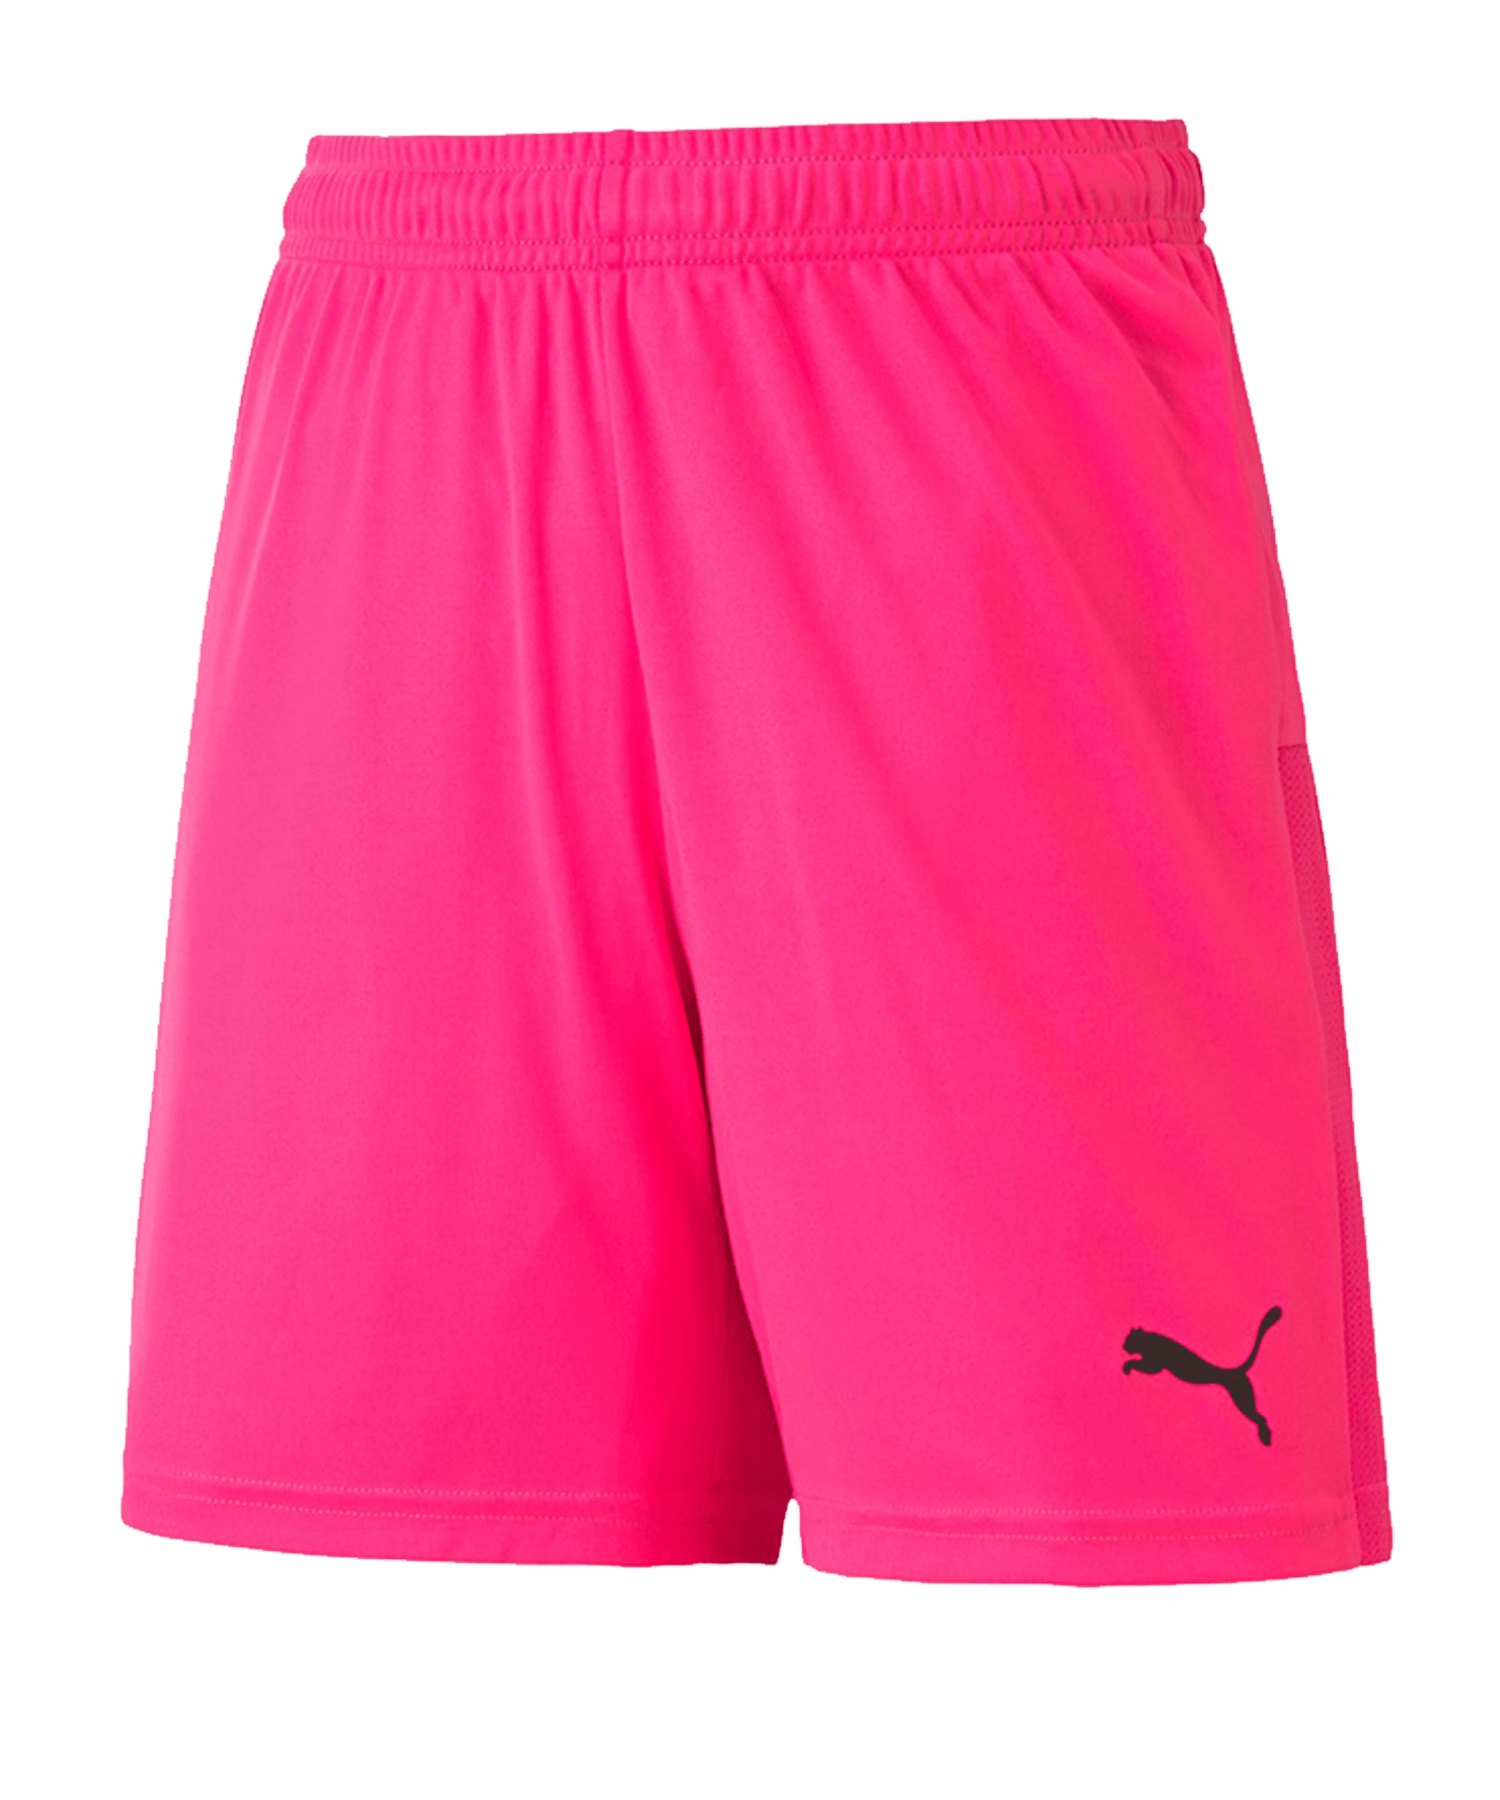 PUMA teamGOAL 23 Knit Short Kids Pink F25 - pink